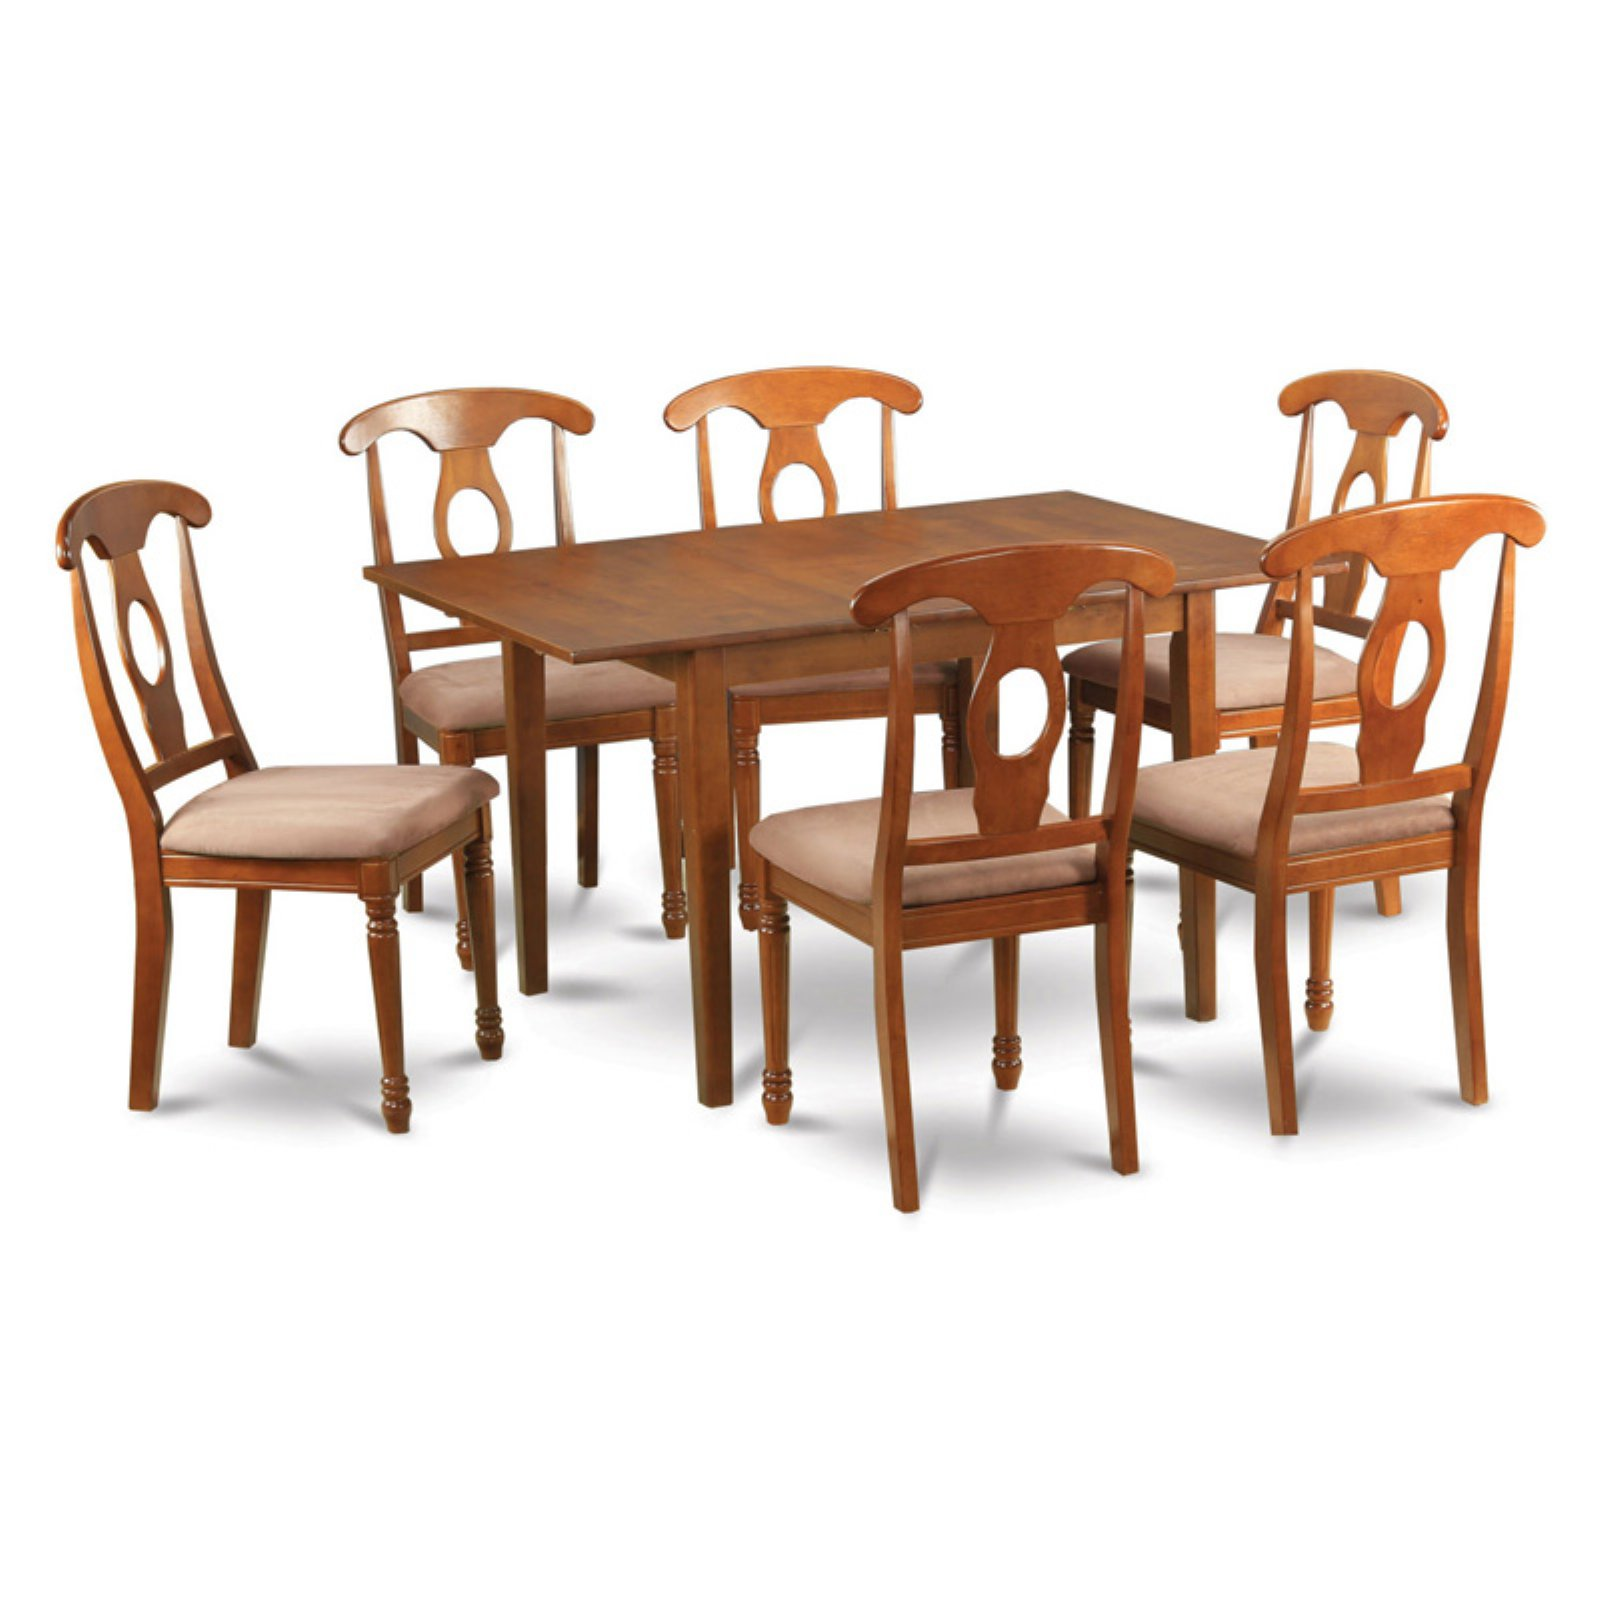 East West Furniture Milan 7 Piece Rectangular Dining Table Set with Kenley Chairs